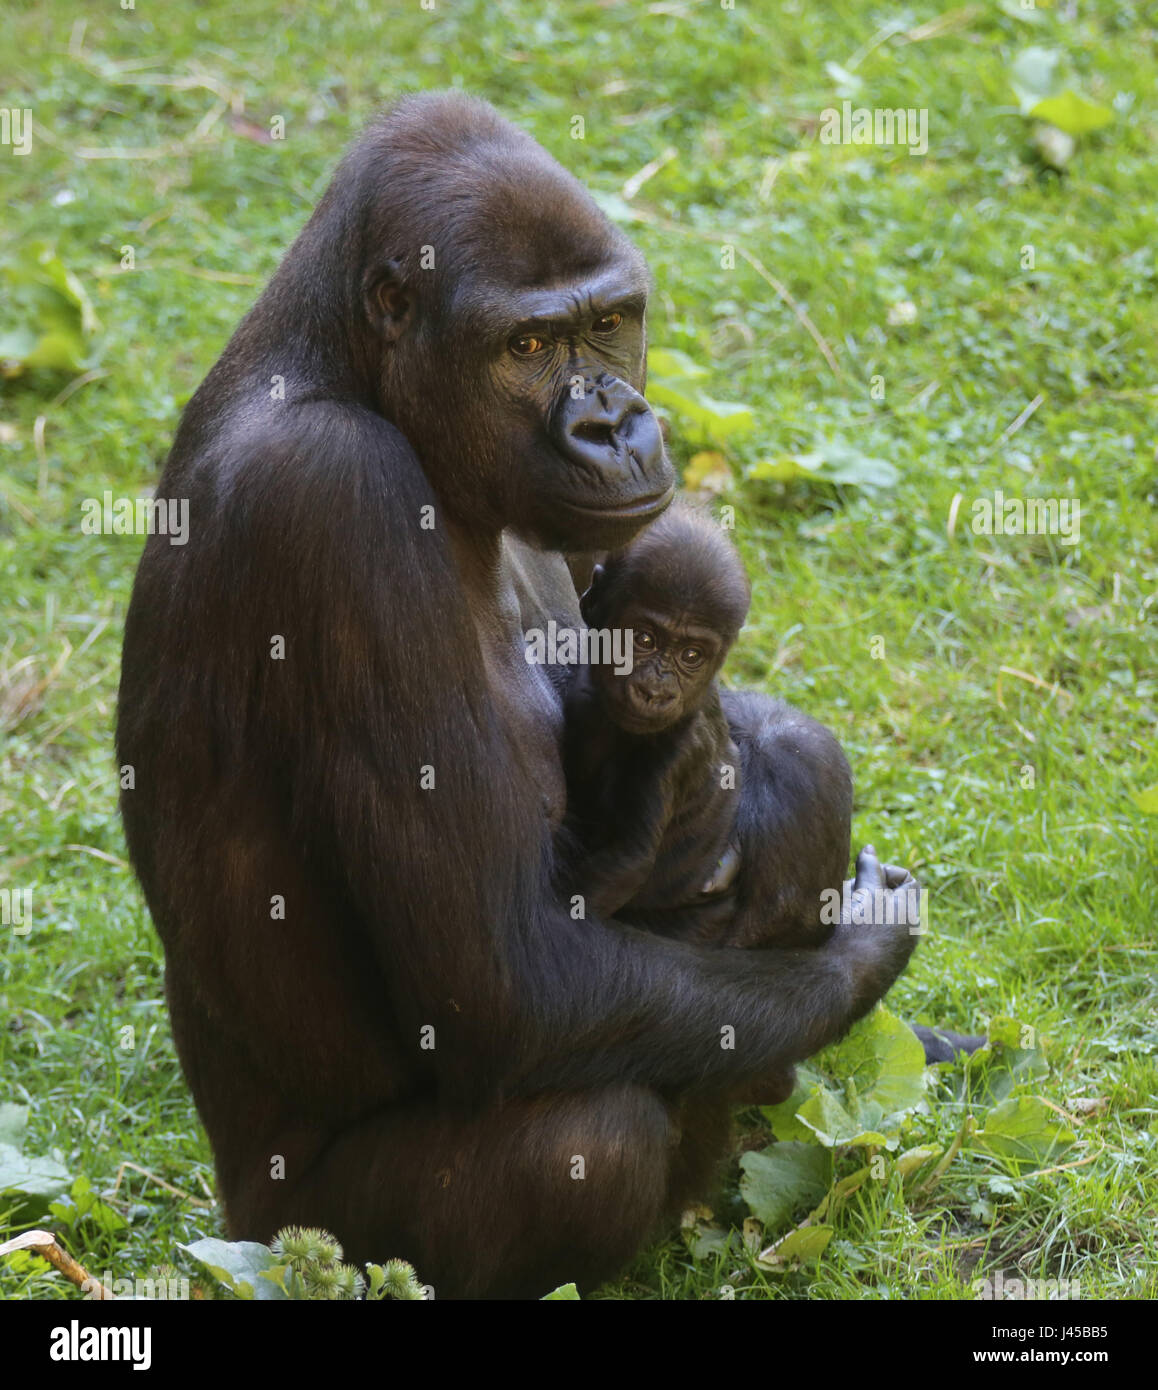 gorilla mother with her baby hominidae stock photo 140260265 alamy